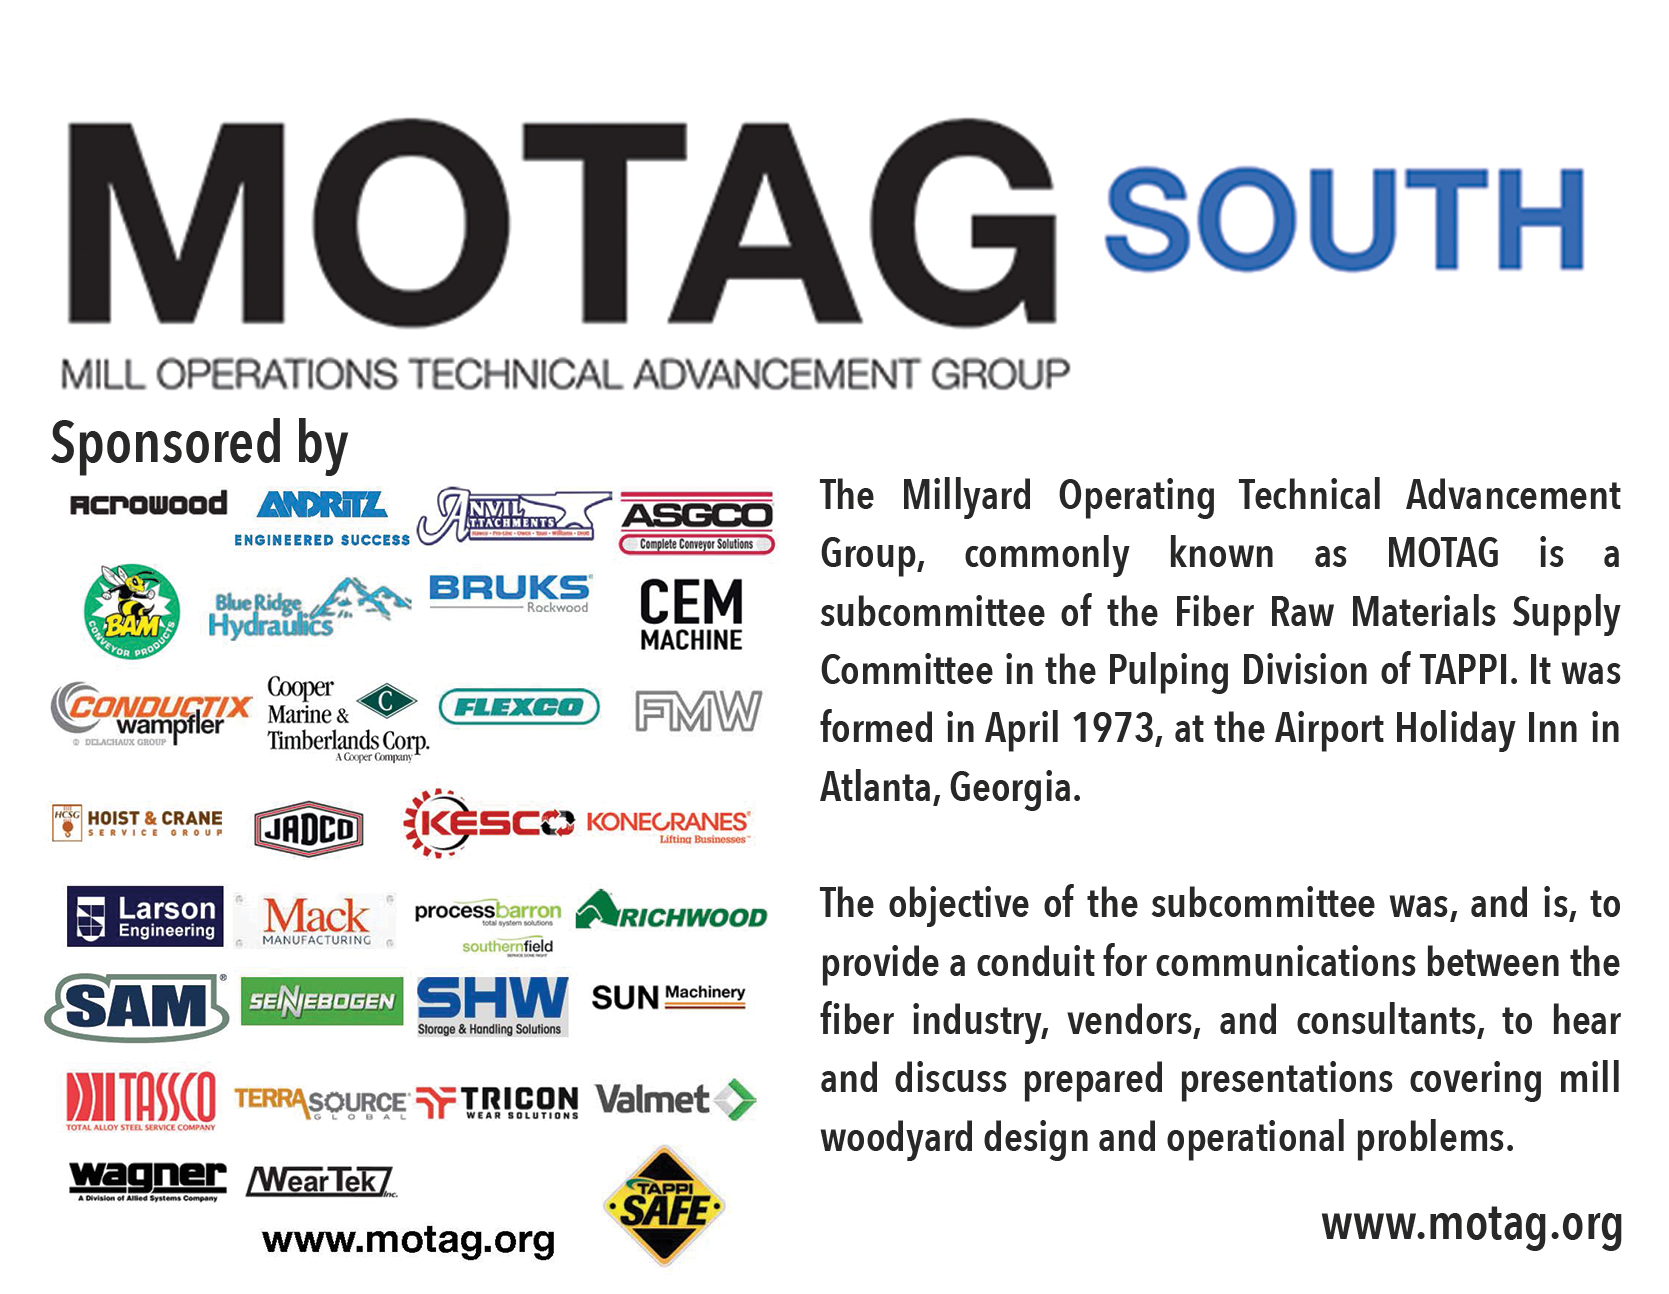 MOTAG SOUTH SPONSORS 2019 - POST CARD SIDE 2